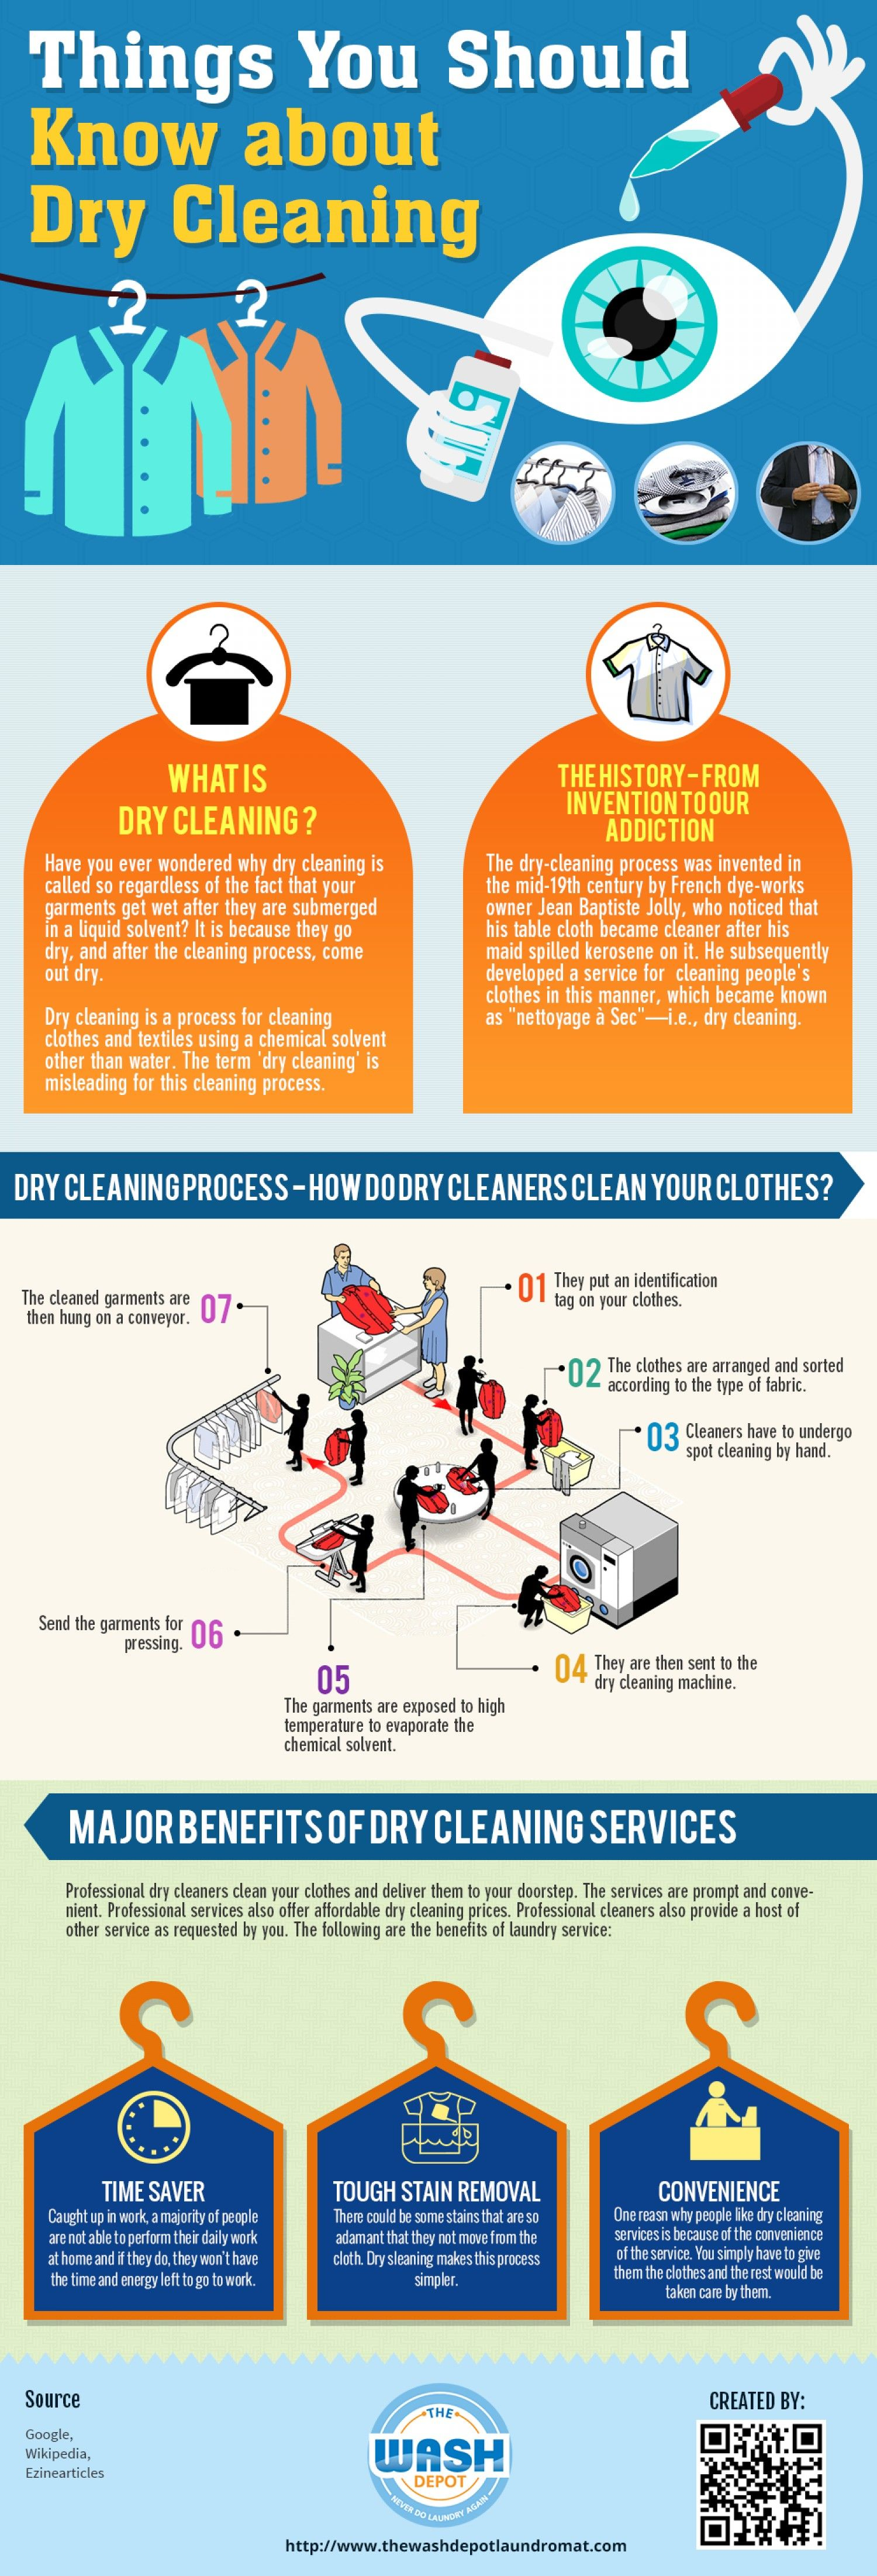 sofa dry cleaners in navi mumbai 5 1 bed buy online things you should know about cleaning infographic